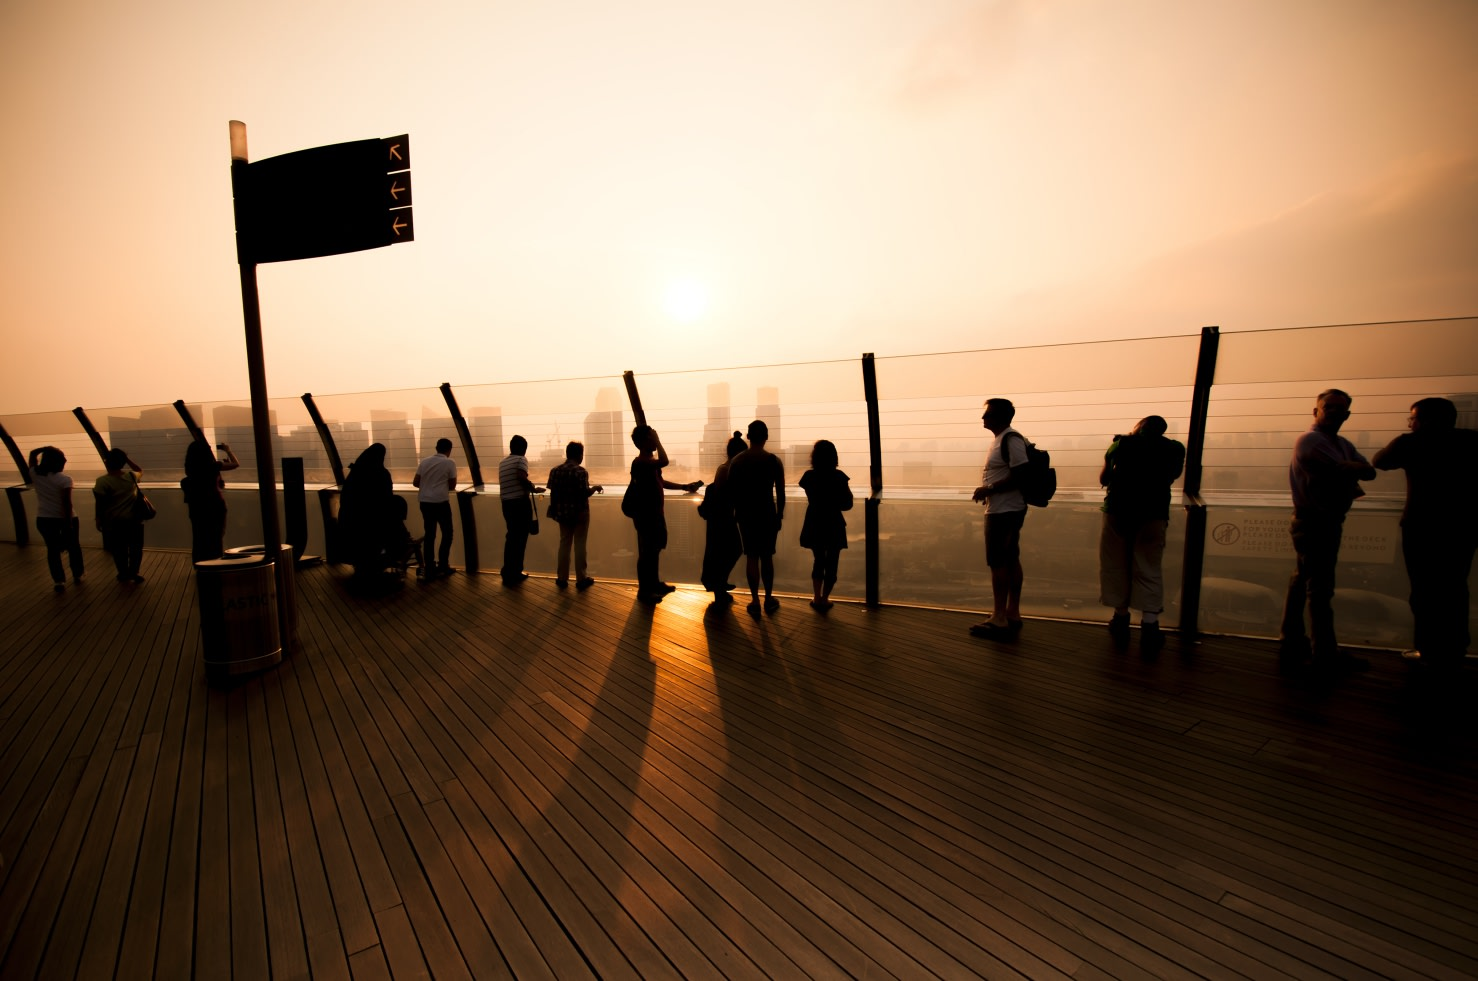 Singapore Marina Bay Sands Skypark Observation Deck